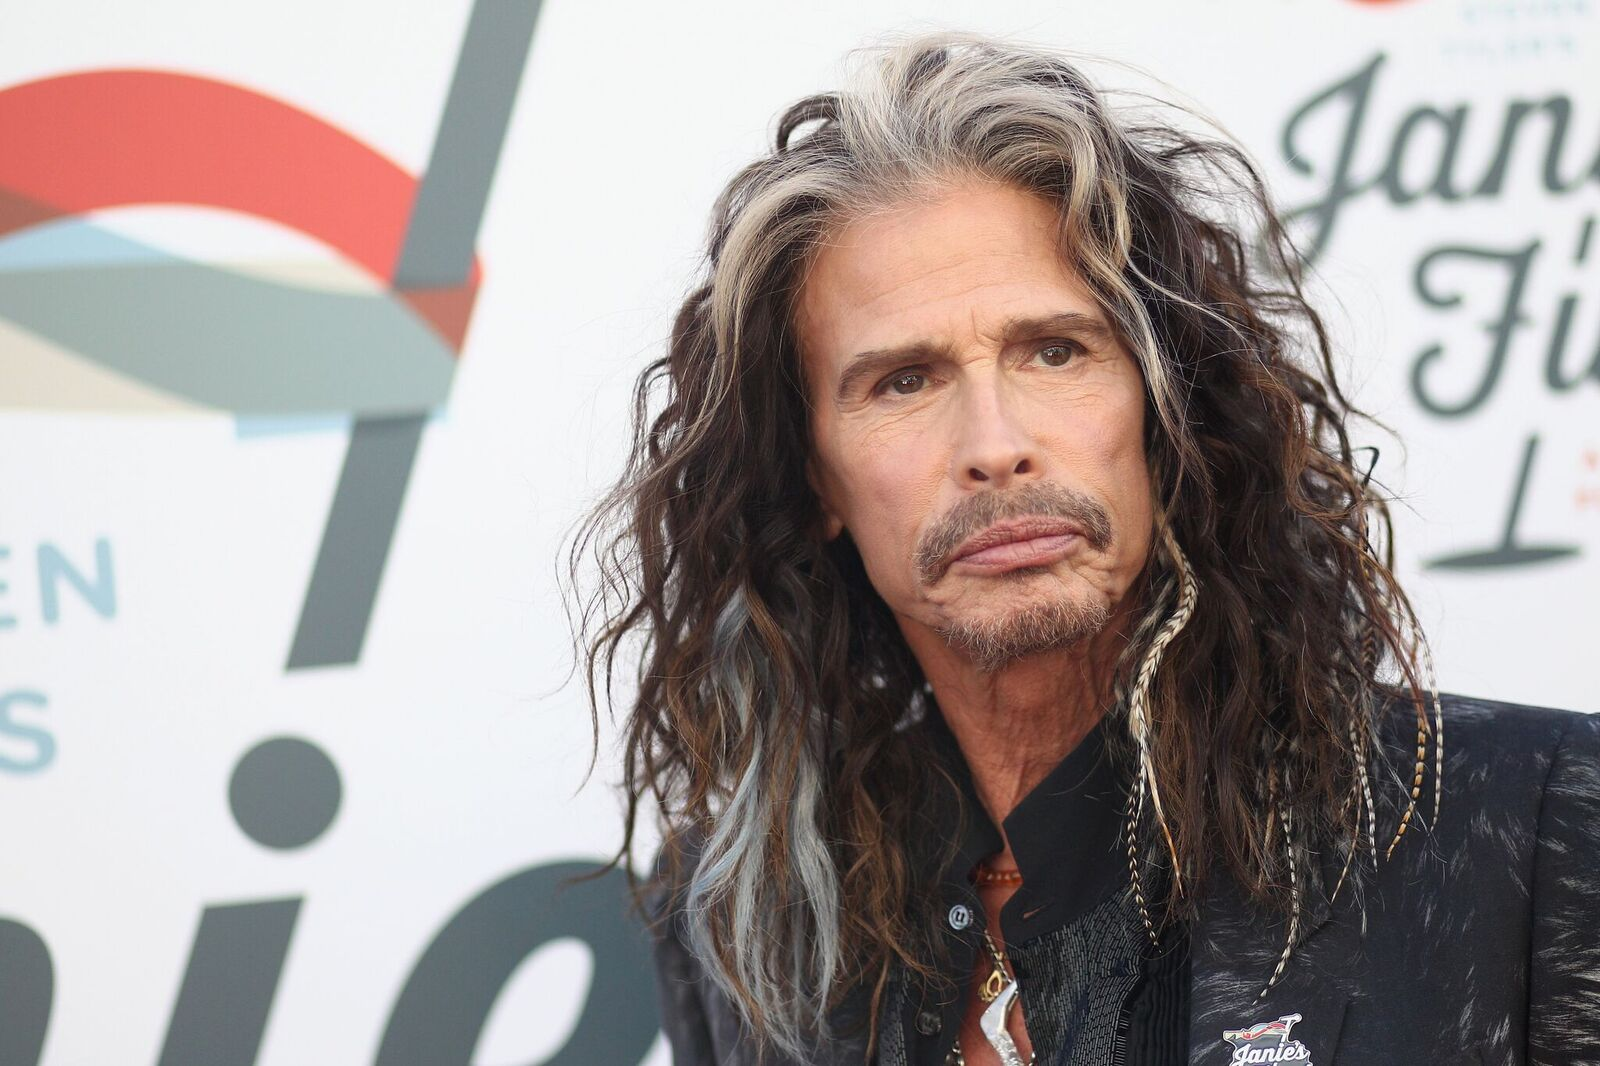 Steven Tyler at the opening of Janie's House | Photo: Getty Images